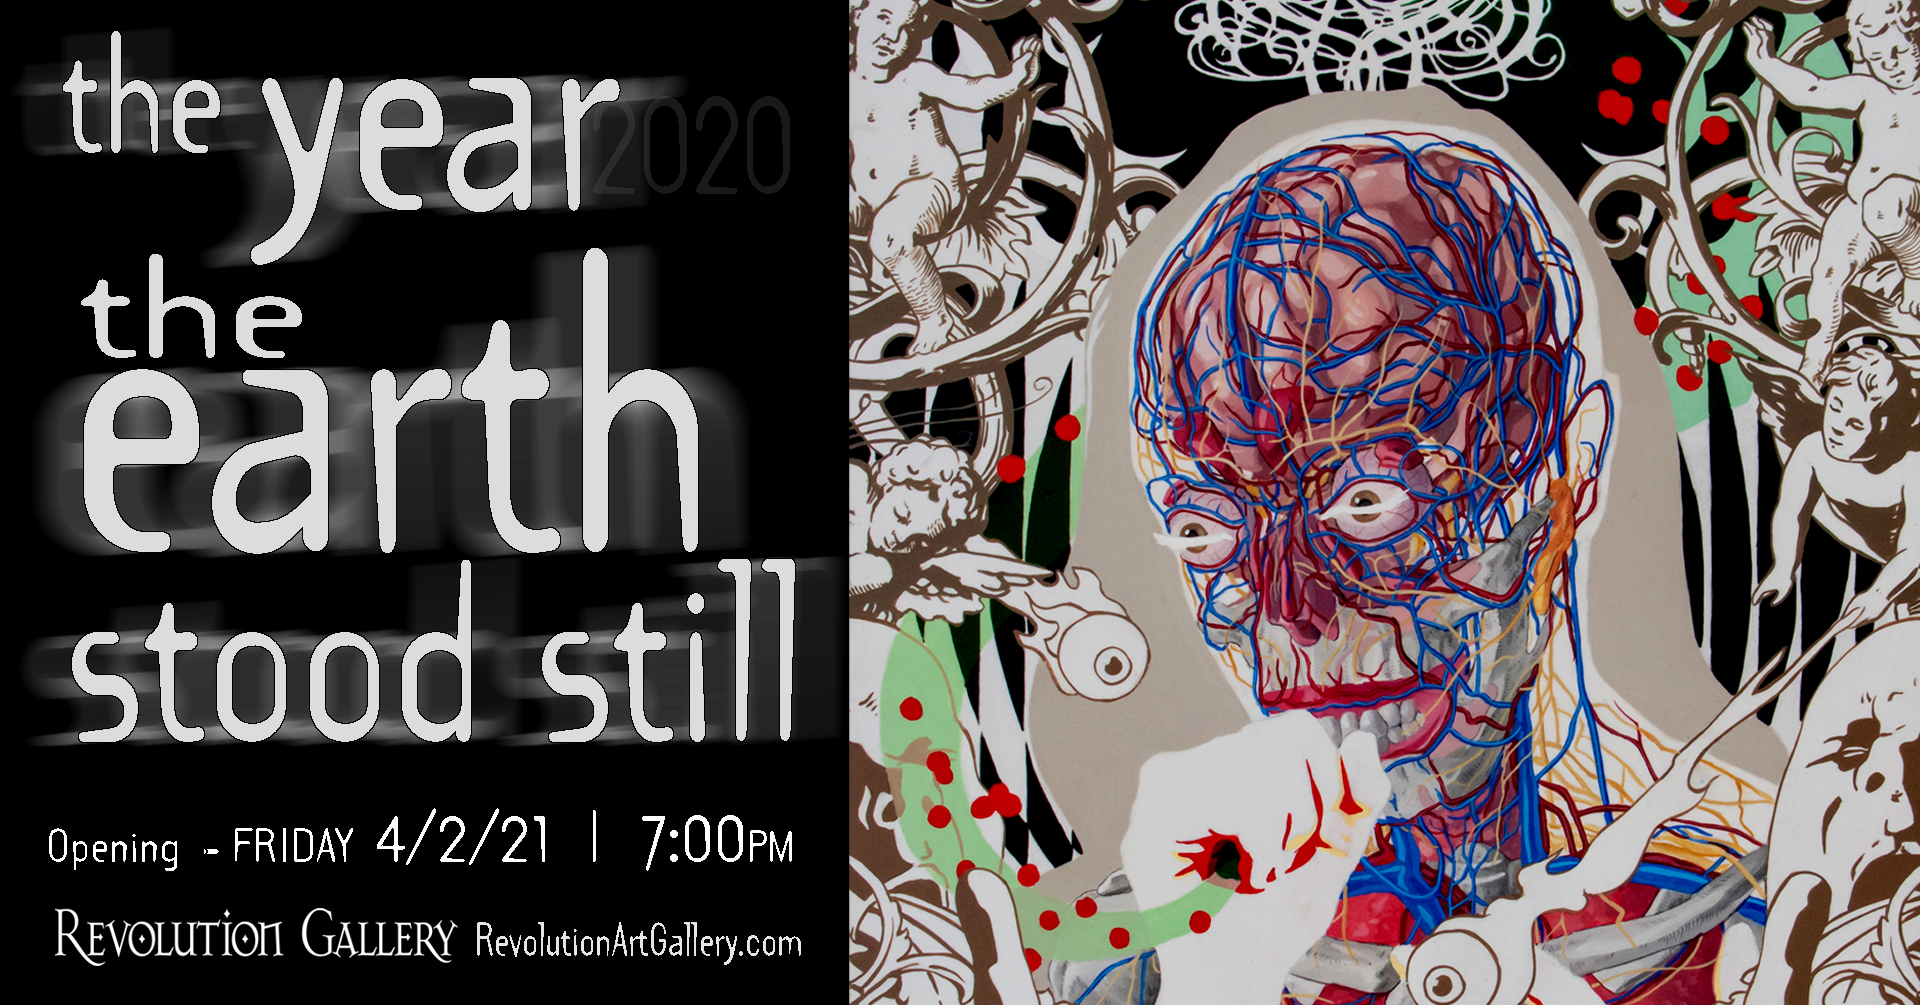 THE_YEAR_THE_EARTH_STOOD_STILL_FB_BANNER